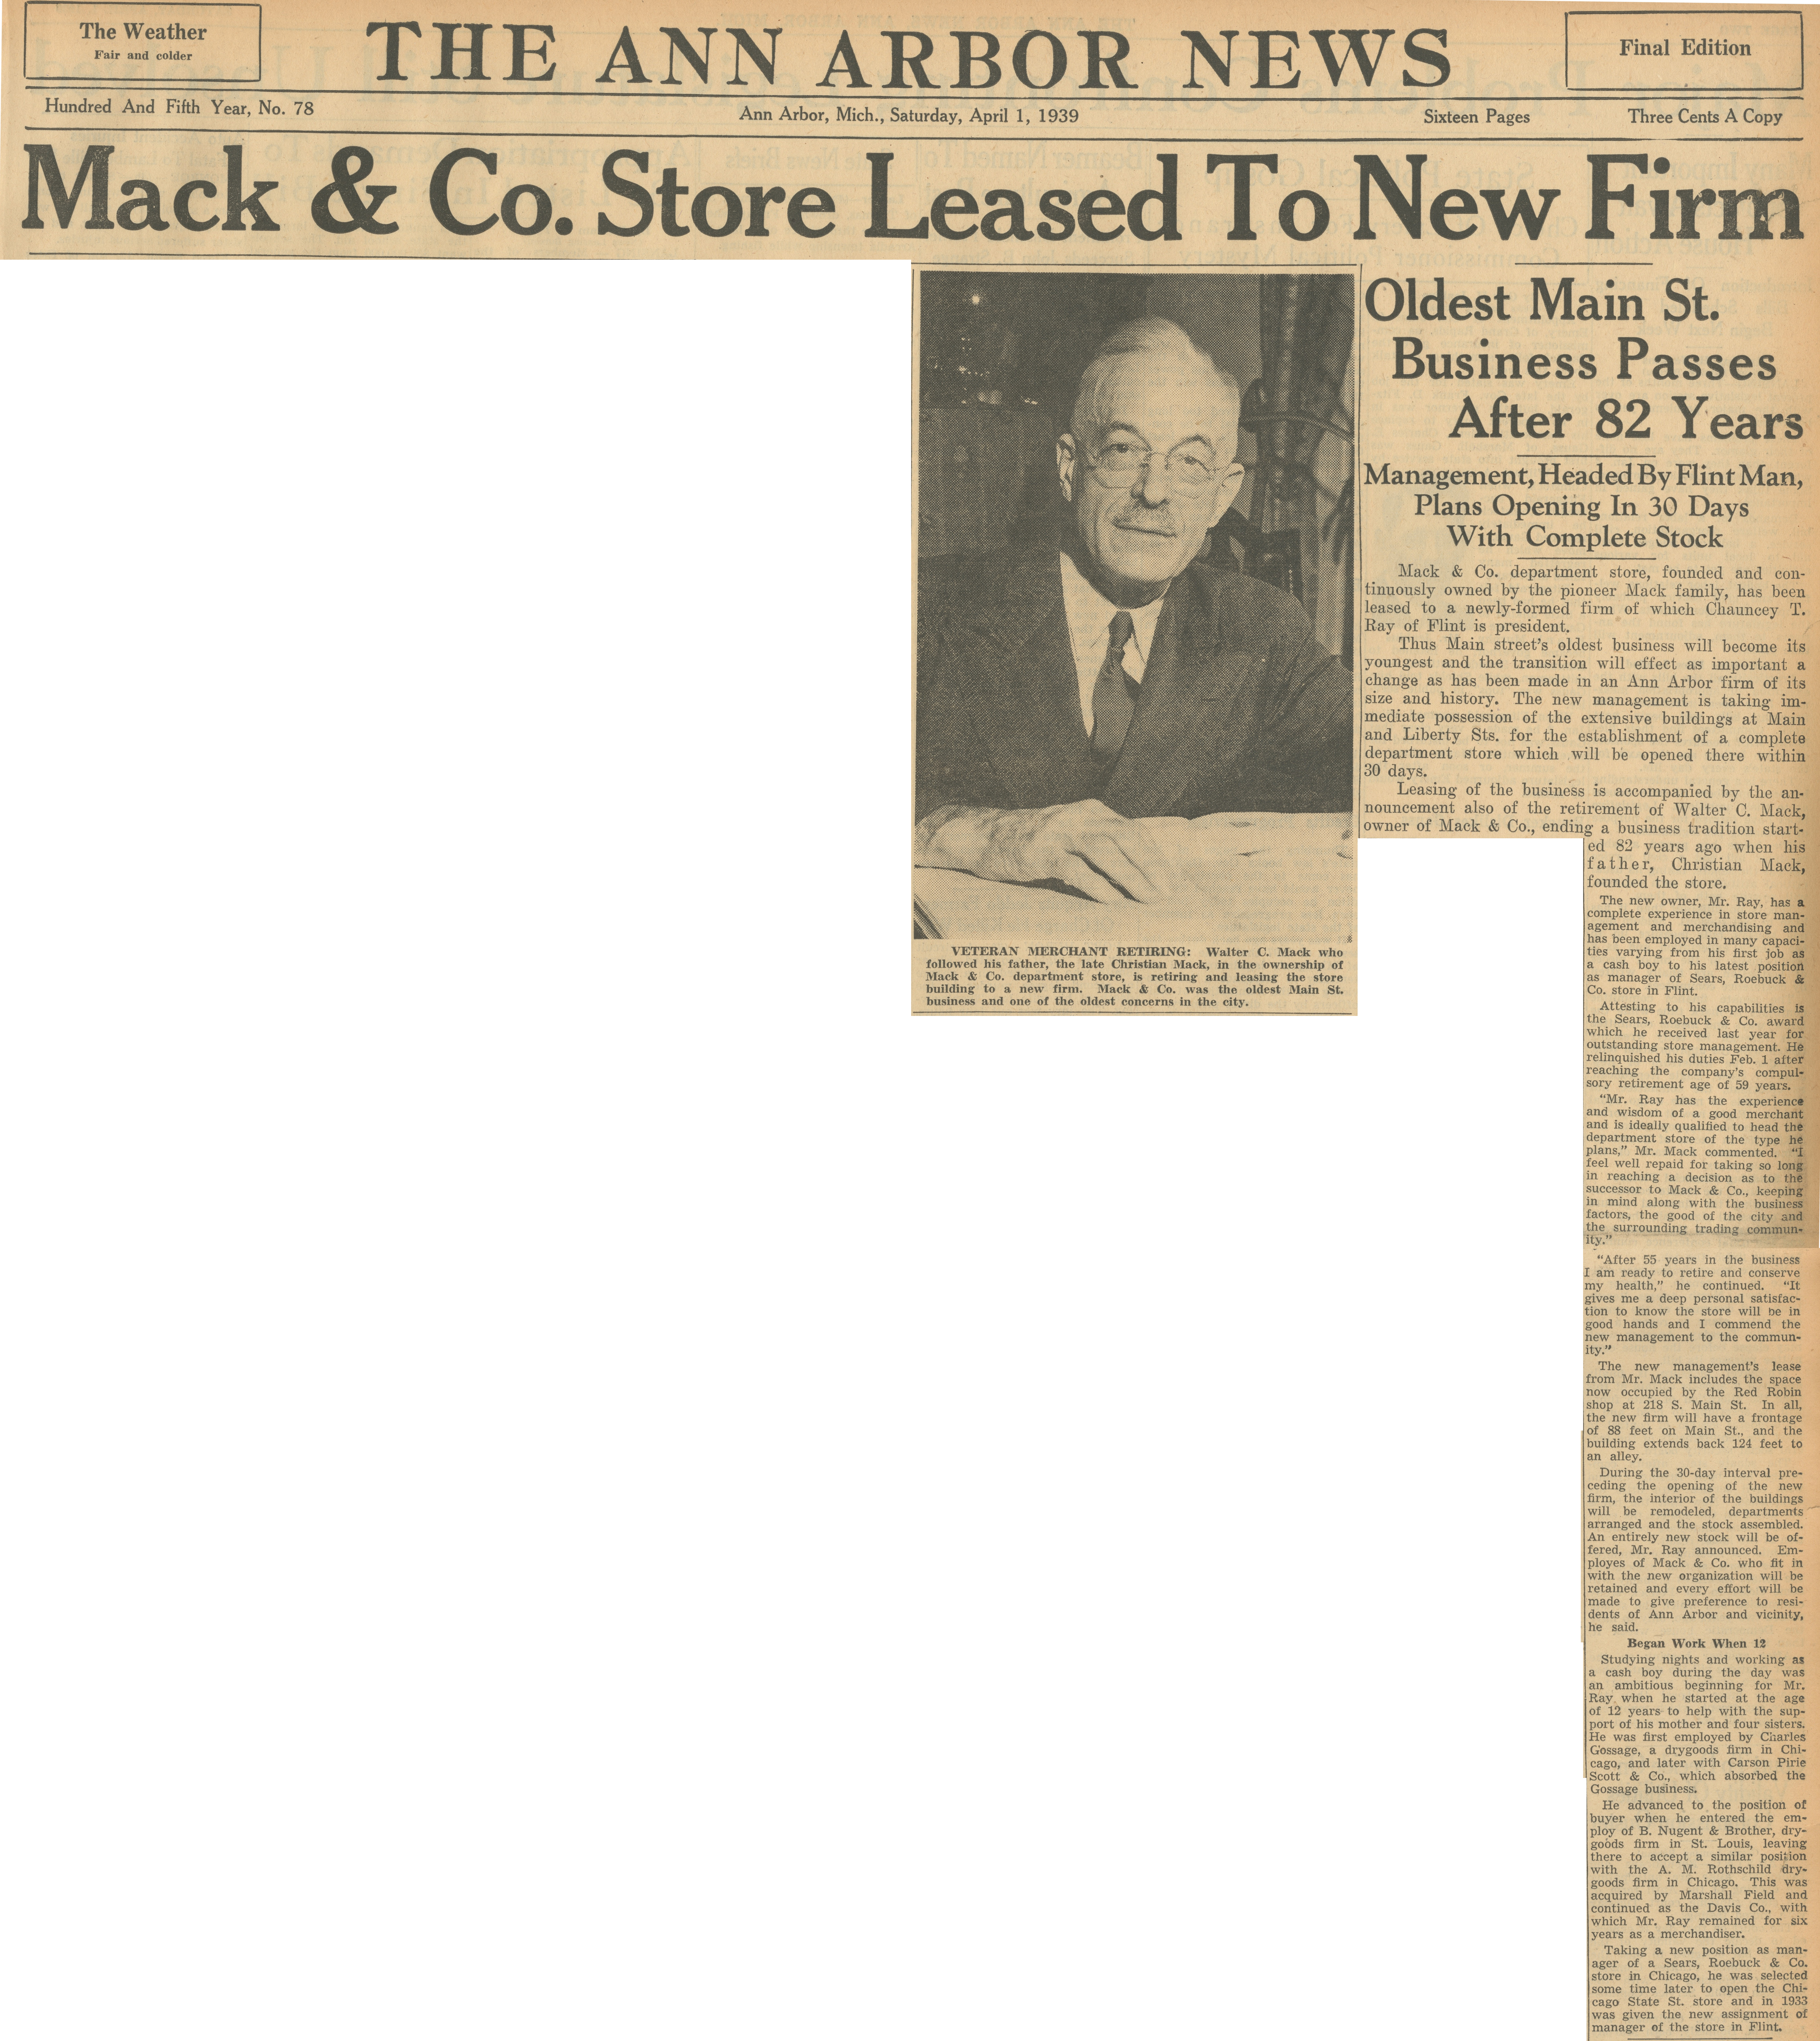 Mack & Co. Store Leased To New Firm - Oldest Main St. Business Passes After 82 Years image